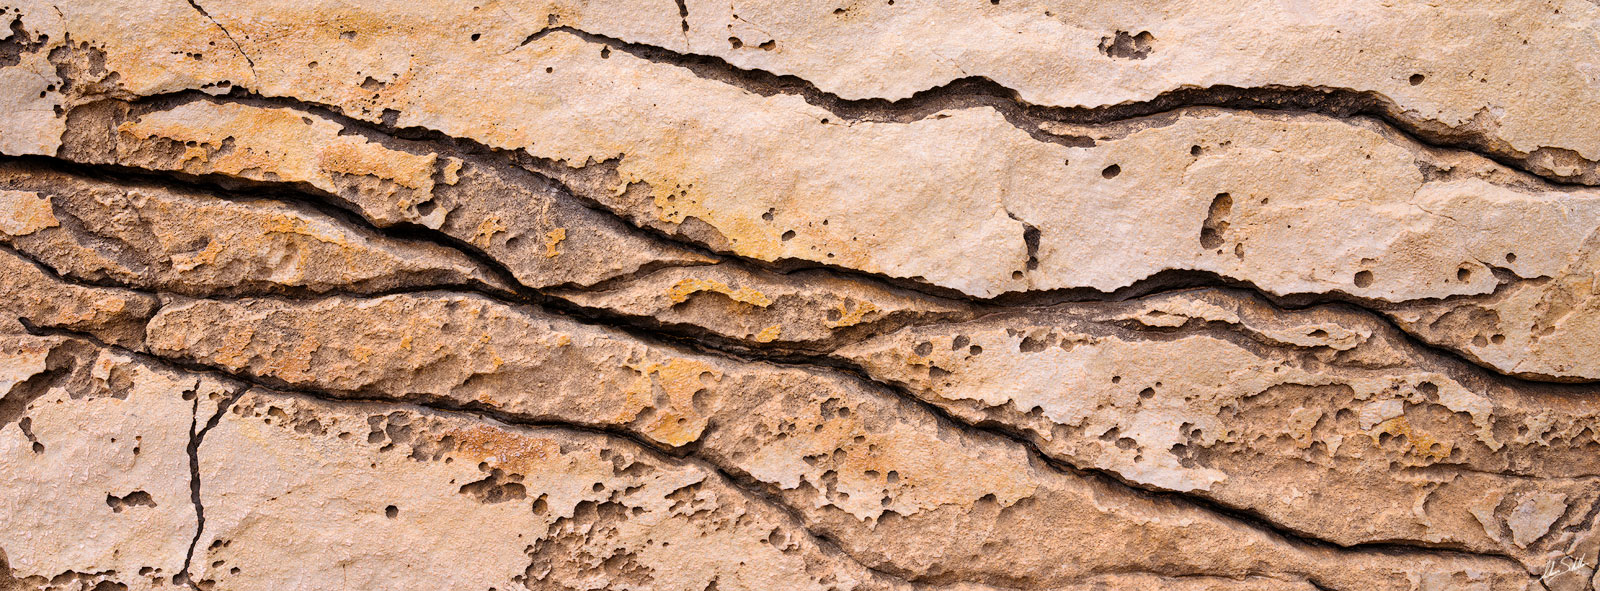 Details of cracks in a boulder along the Colorado River near South Canyon in Grand Canyon National Park. © Adam Schallau, All...